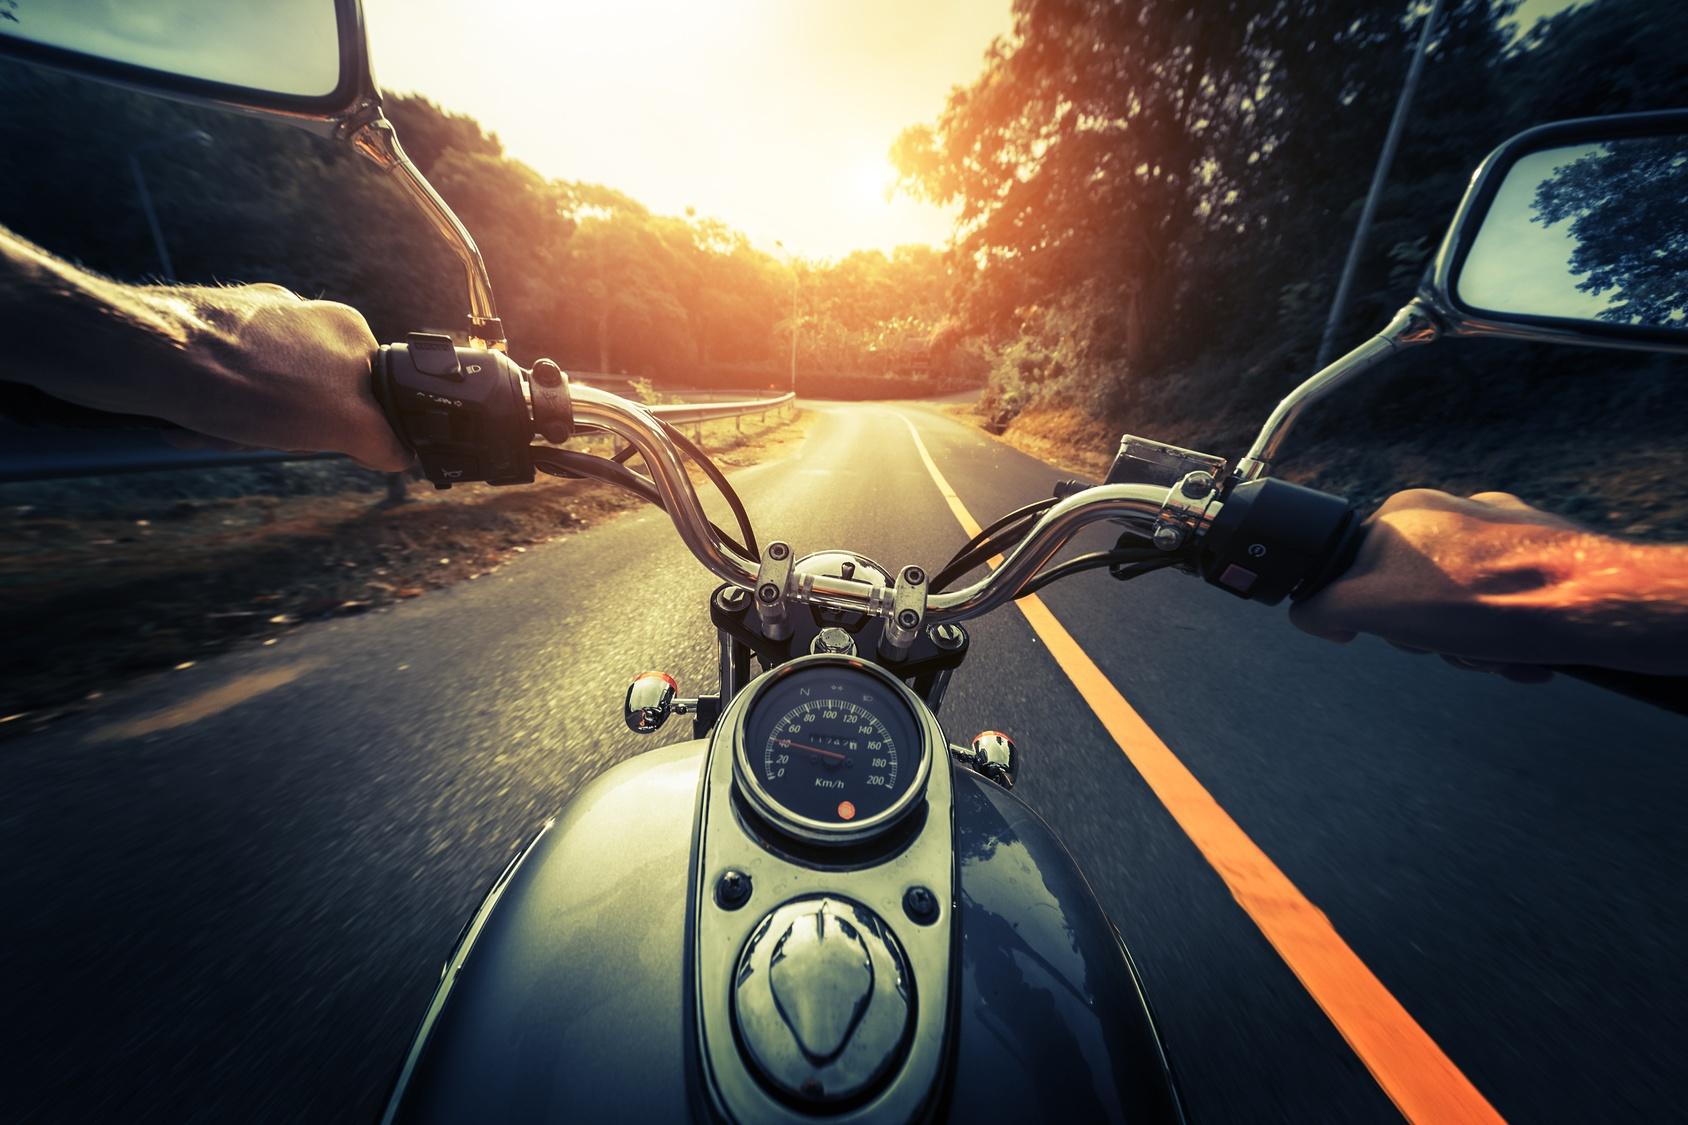 front end of motorcycle driving down a road